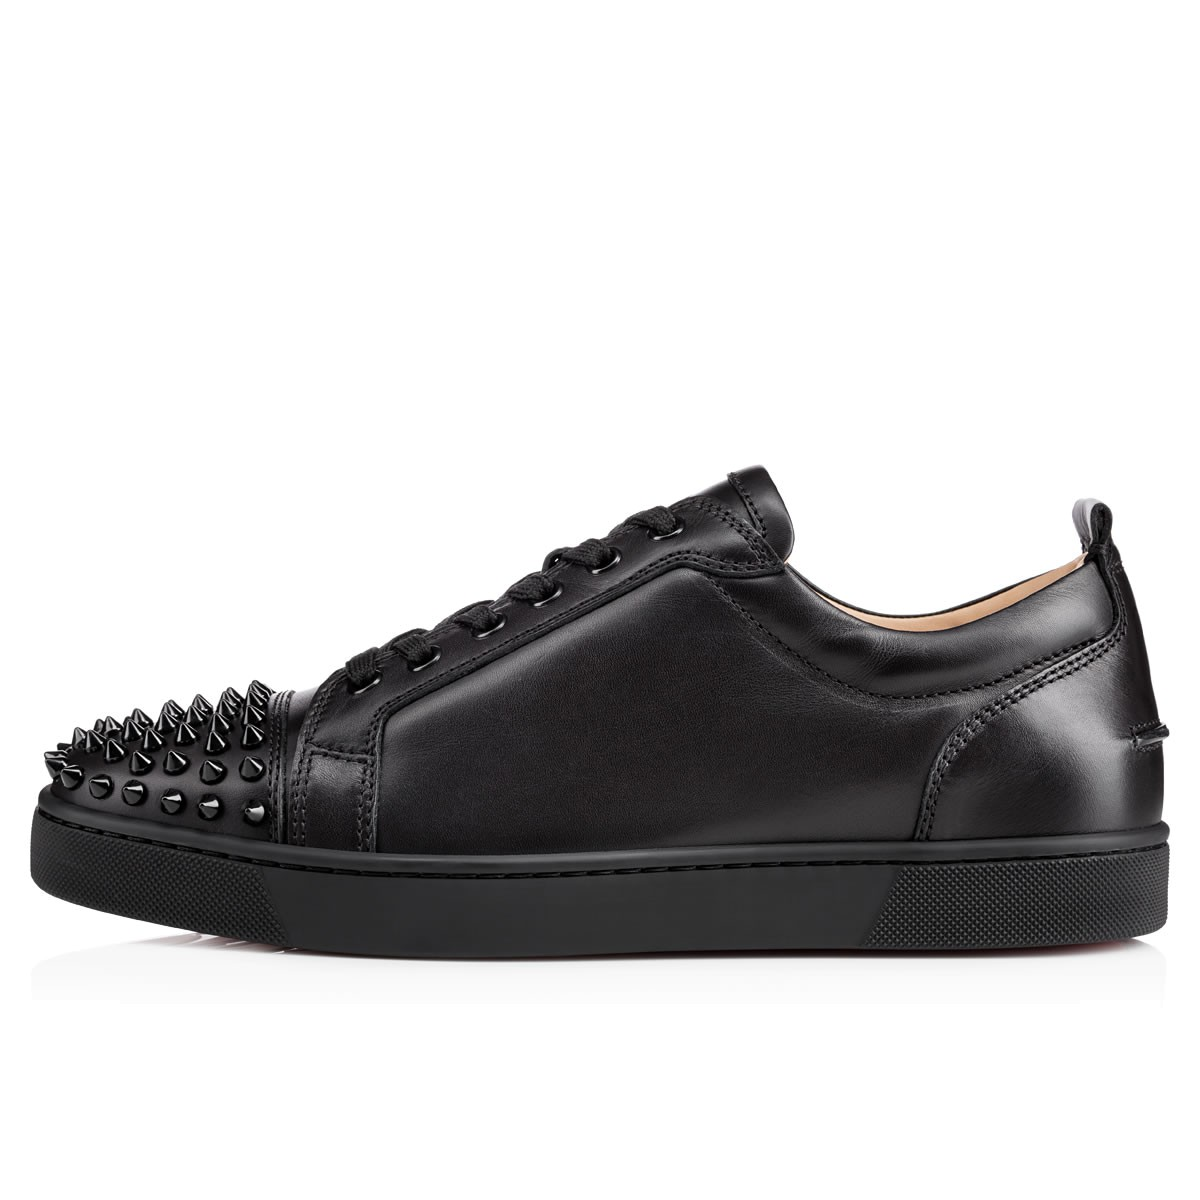 ... Shoes - Louis Junior Spikes Men s Flat - Christian Louboutin ...